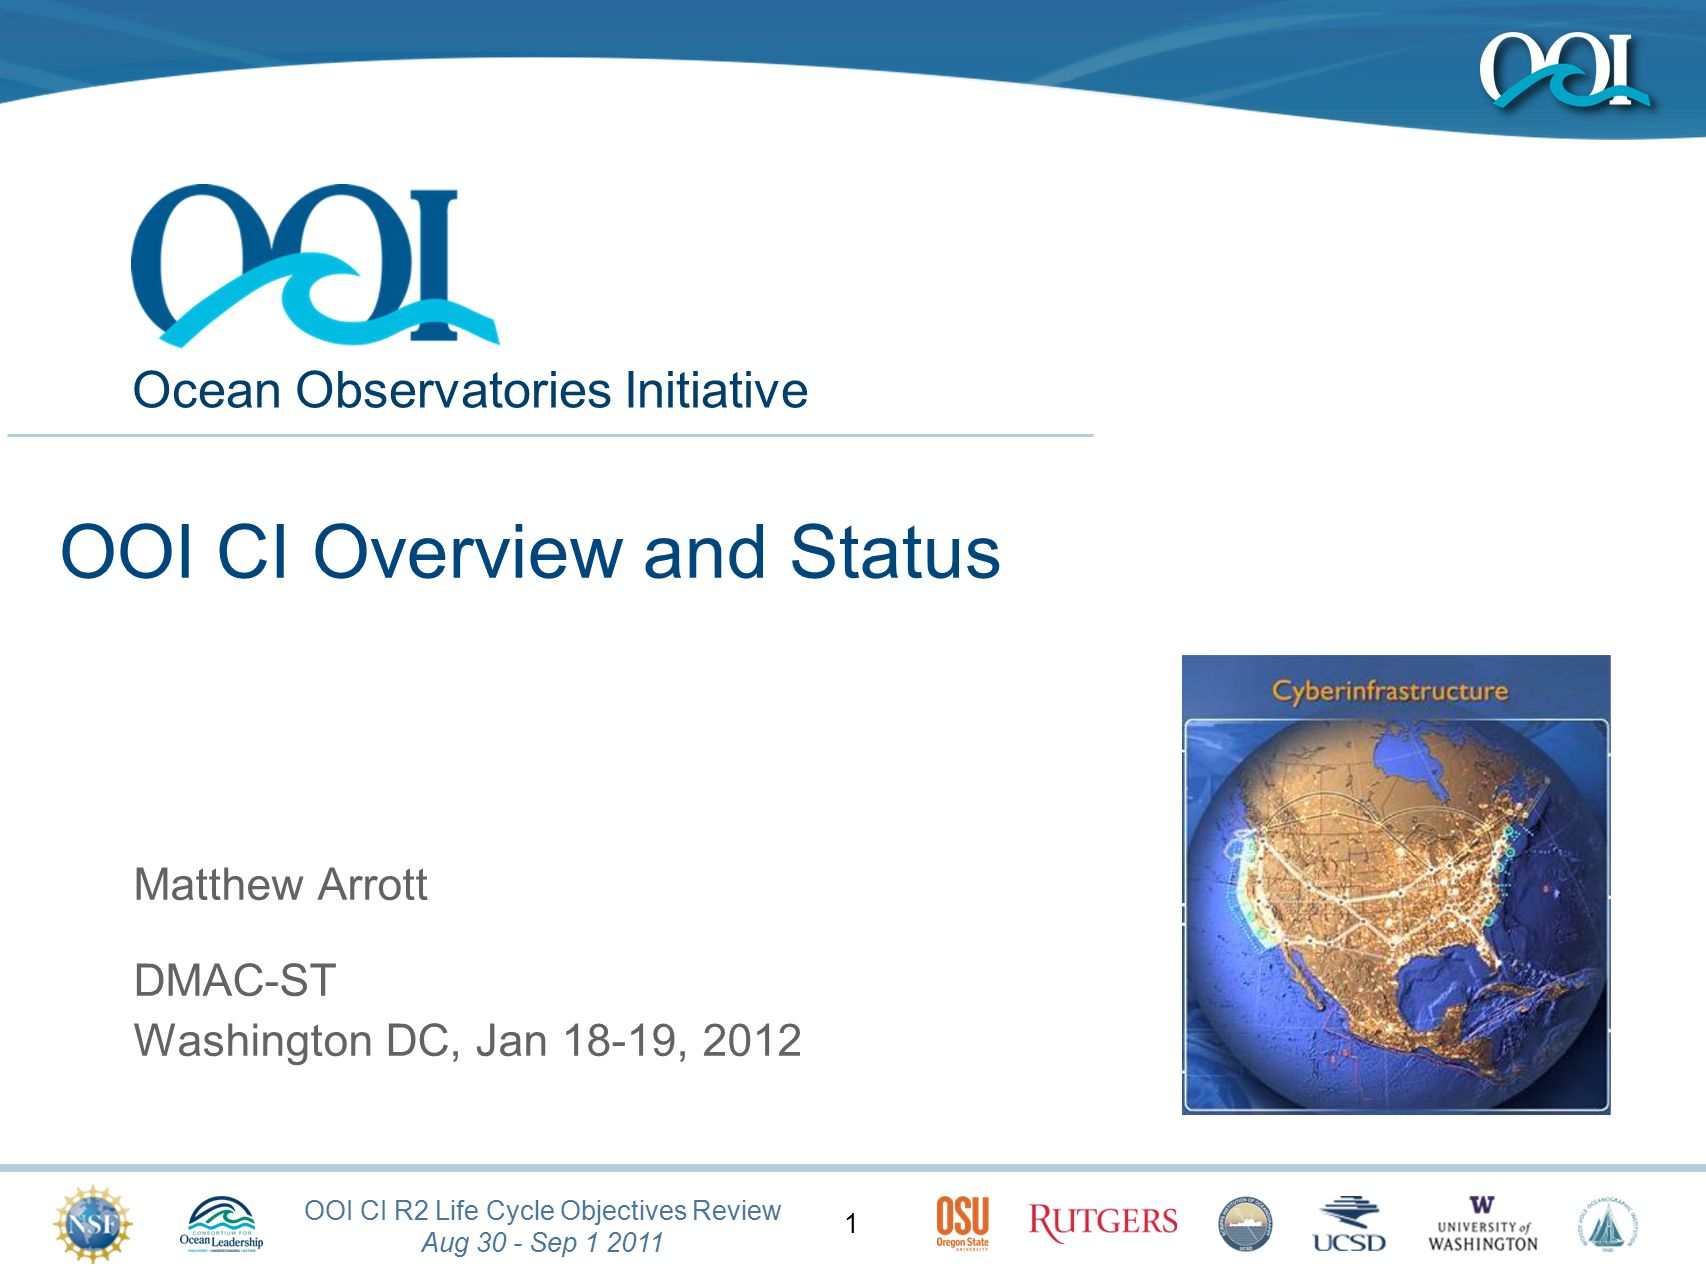 OOI CI R2 Life Cycle Objectives Review Aug 30 - Sep 1 2011 Ocean Observatories Initiative 1 OOI CI Overview and Status Matthew Arrott DMAC-ST Washington DC, Jan 18-19, 2012